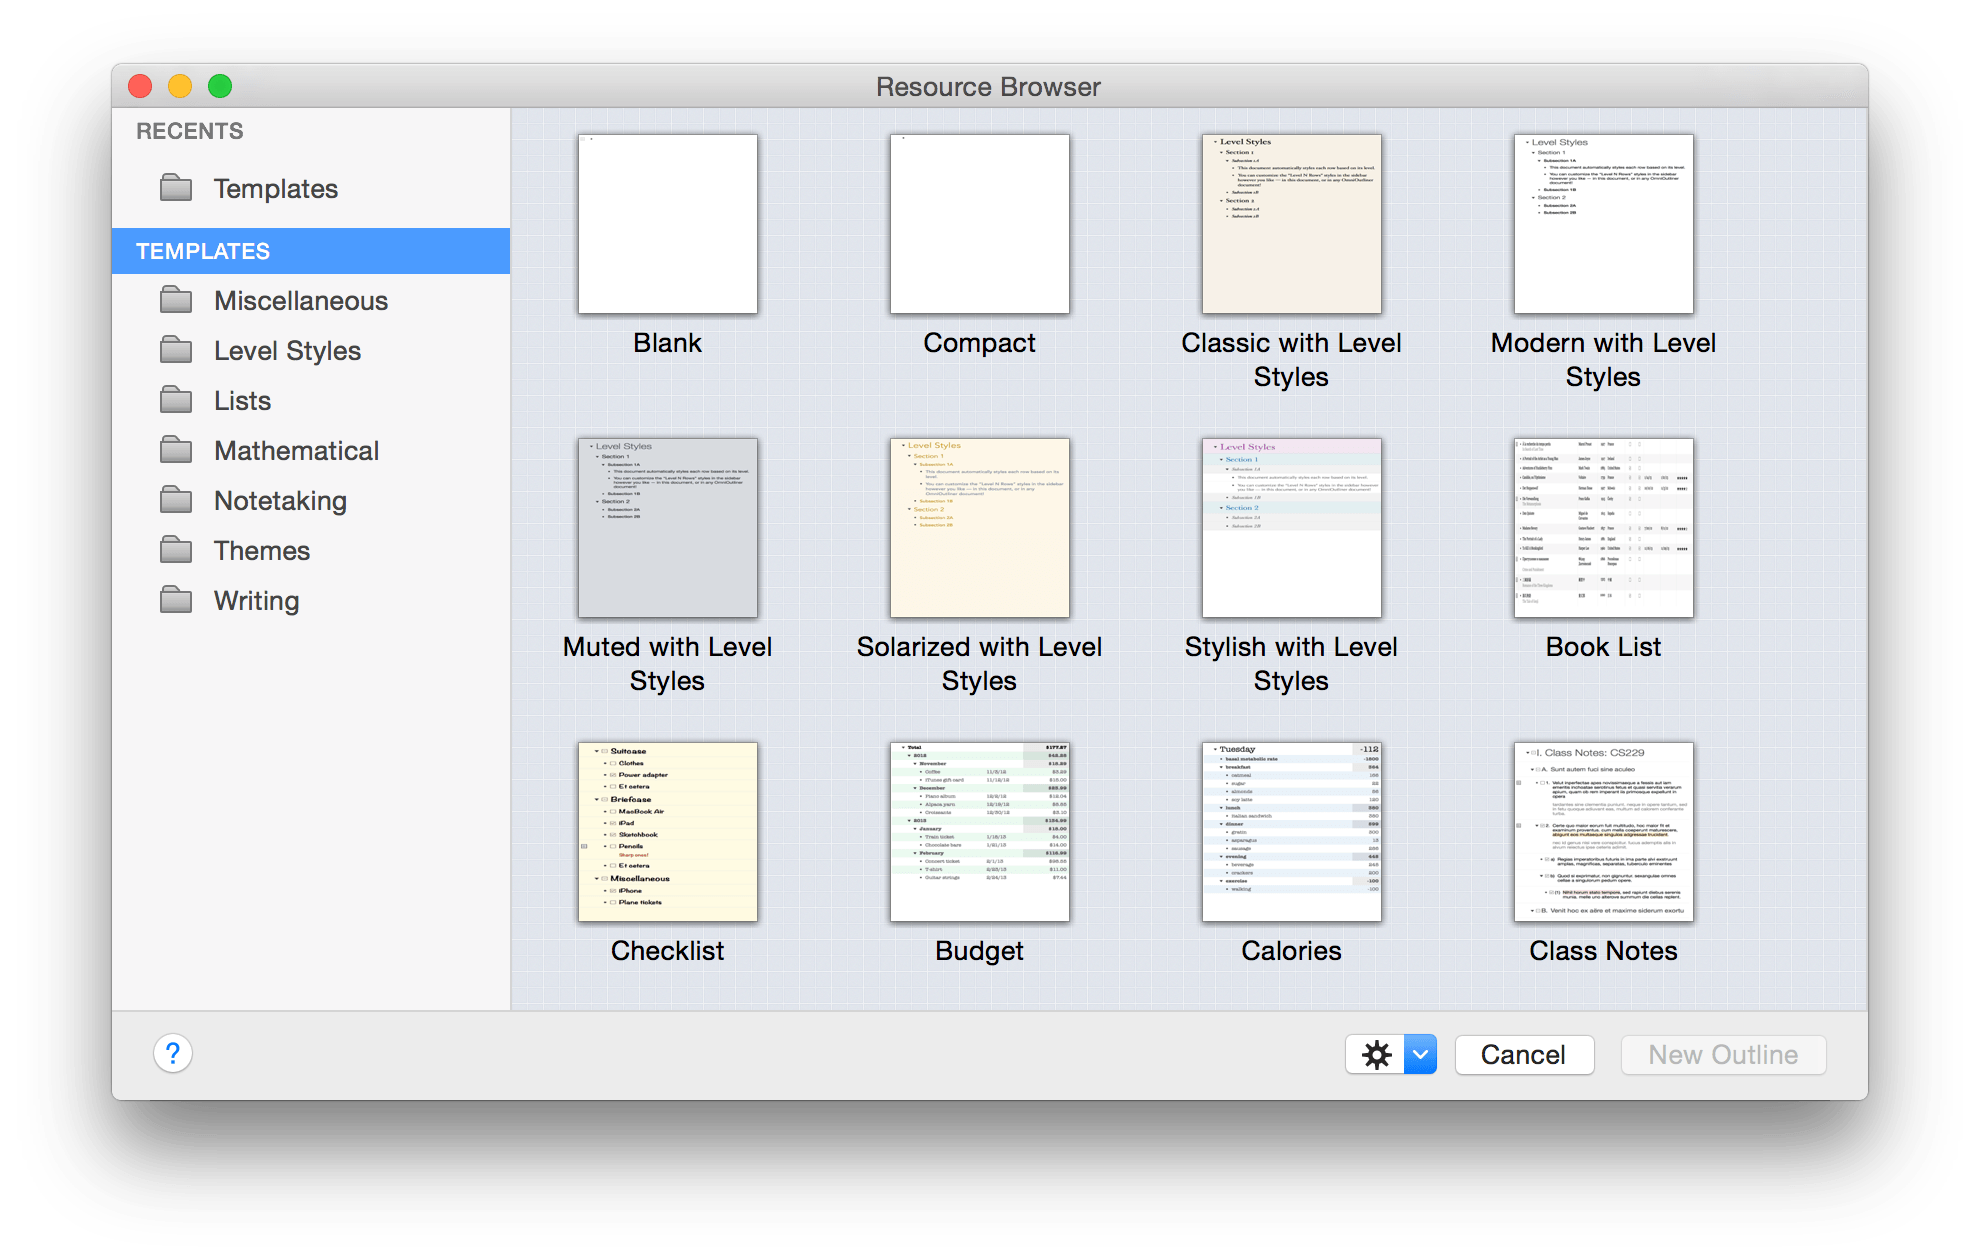 OmniOutliner 4 2 for Mac User Manual - Using the Resource